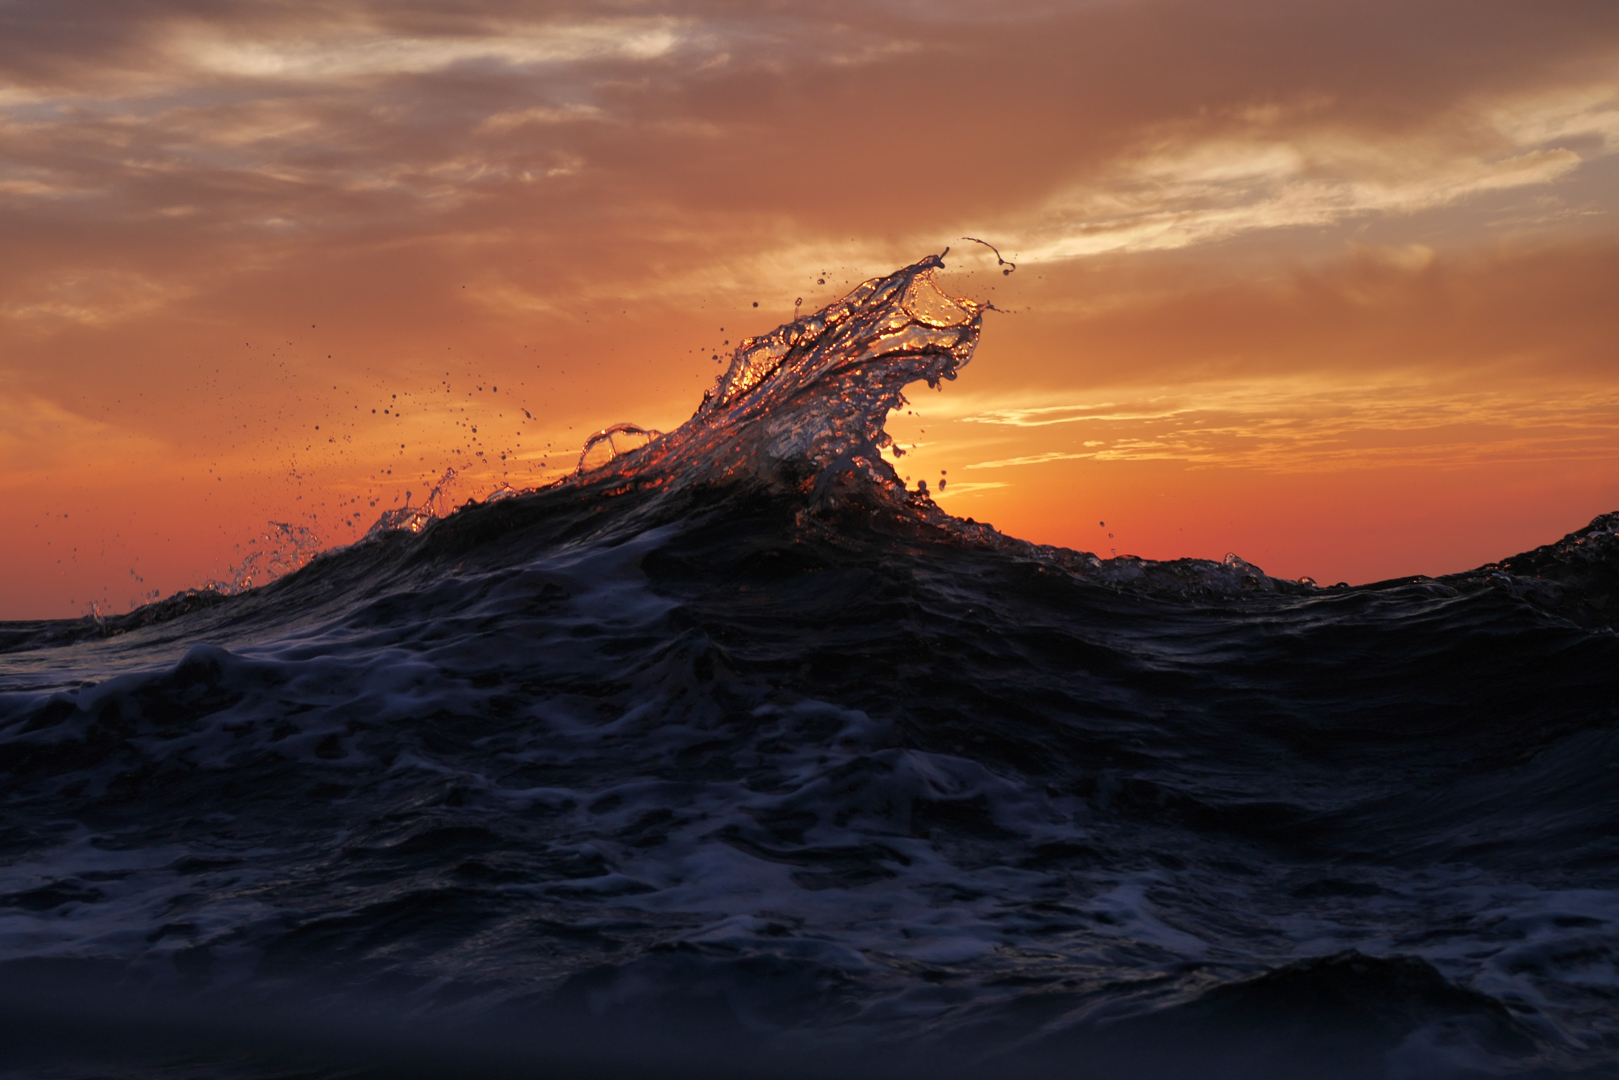 ITALY, Rome – A wave during sunset. © Marko Kecman